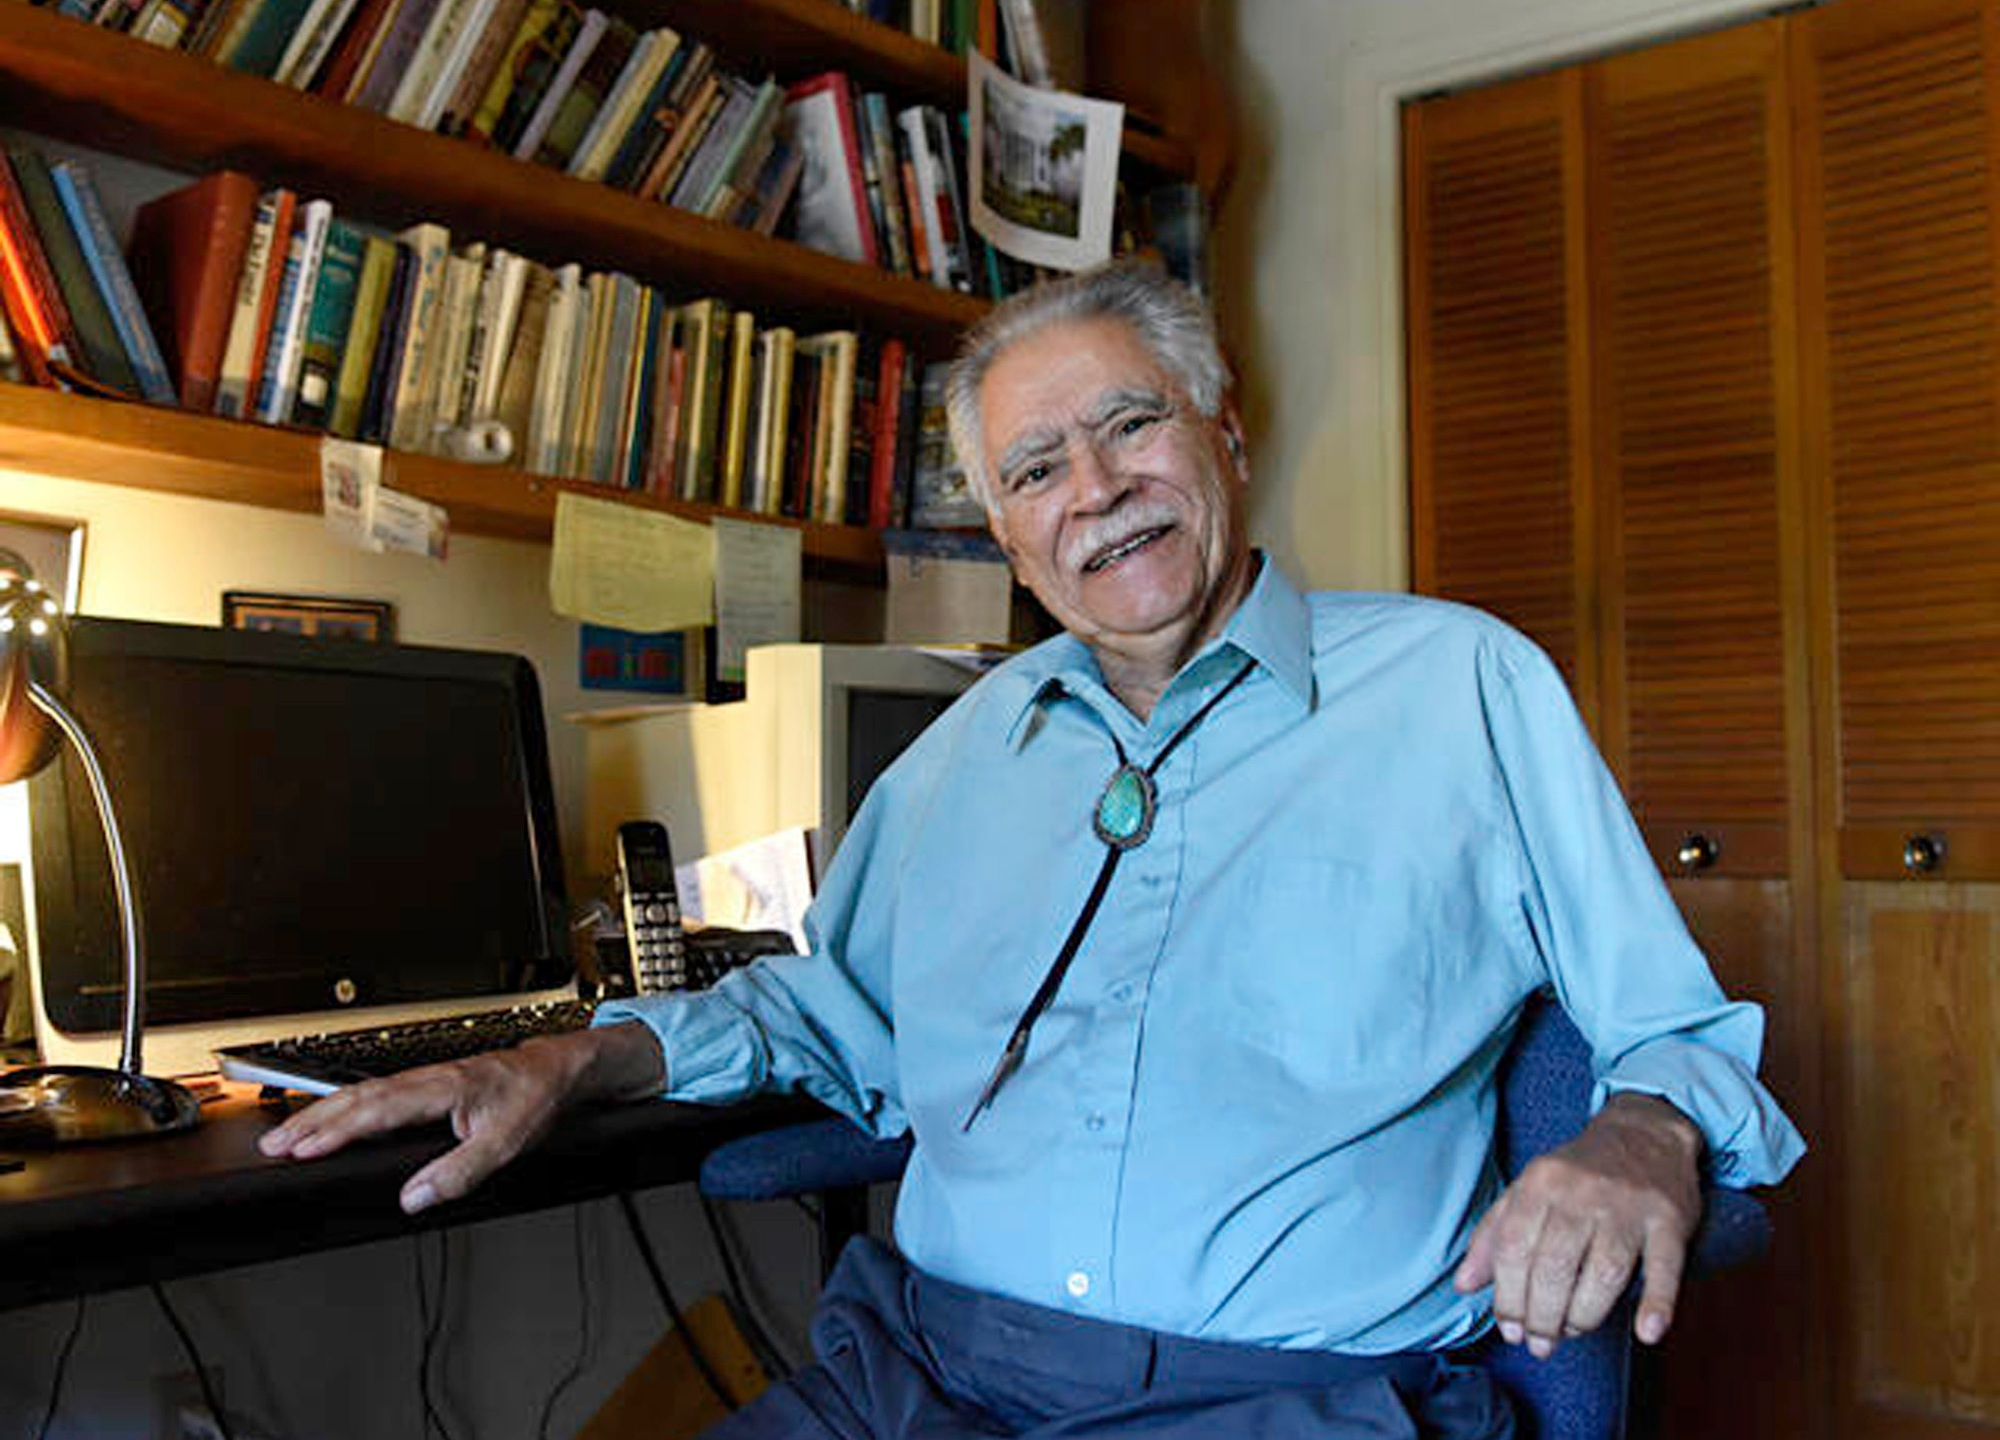 In this June 6, 2016 image, author Rudolfo Anaya poses for a photograph in his home writing studio. (Dean Hanson/Albuquerque Journal via AP)